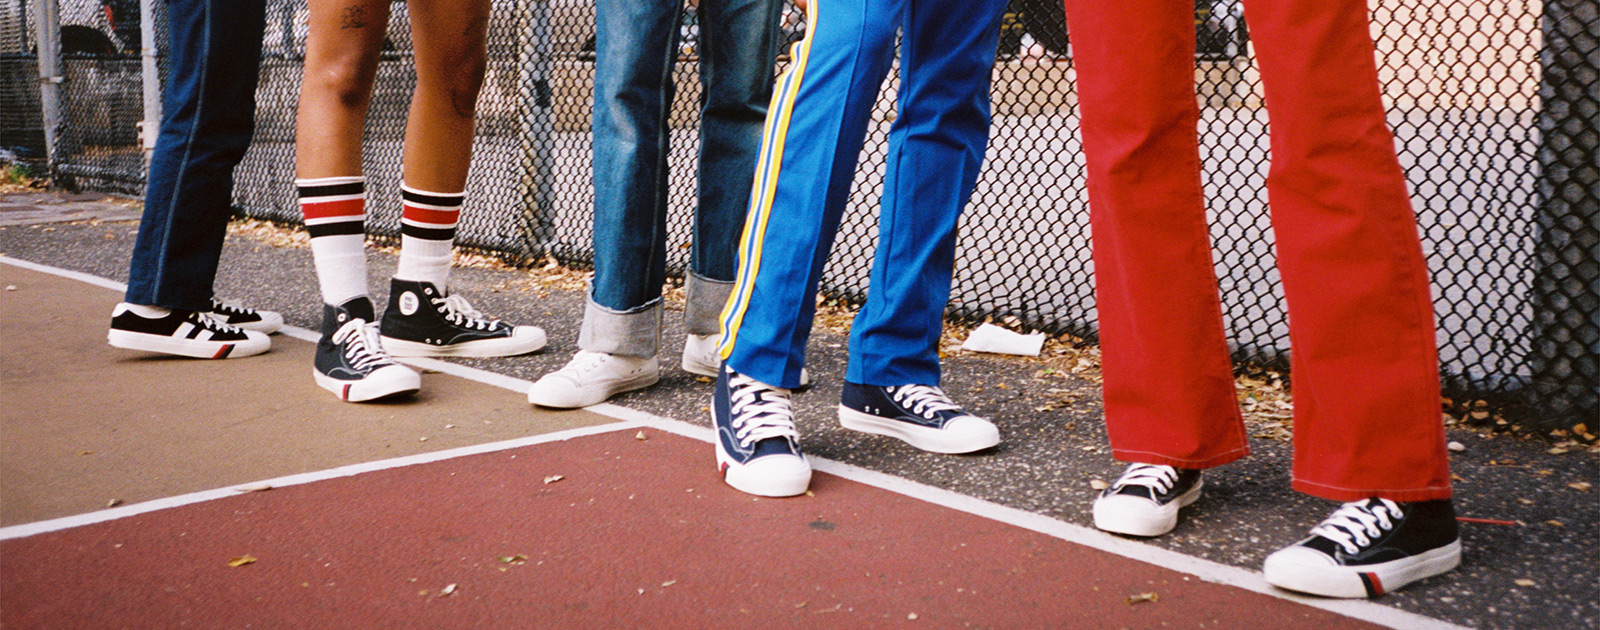 Group of friends along a fence on a basketball court, wearing ProKeds.